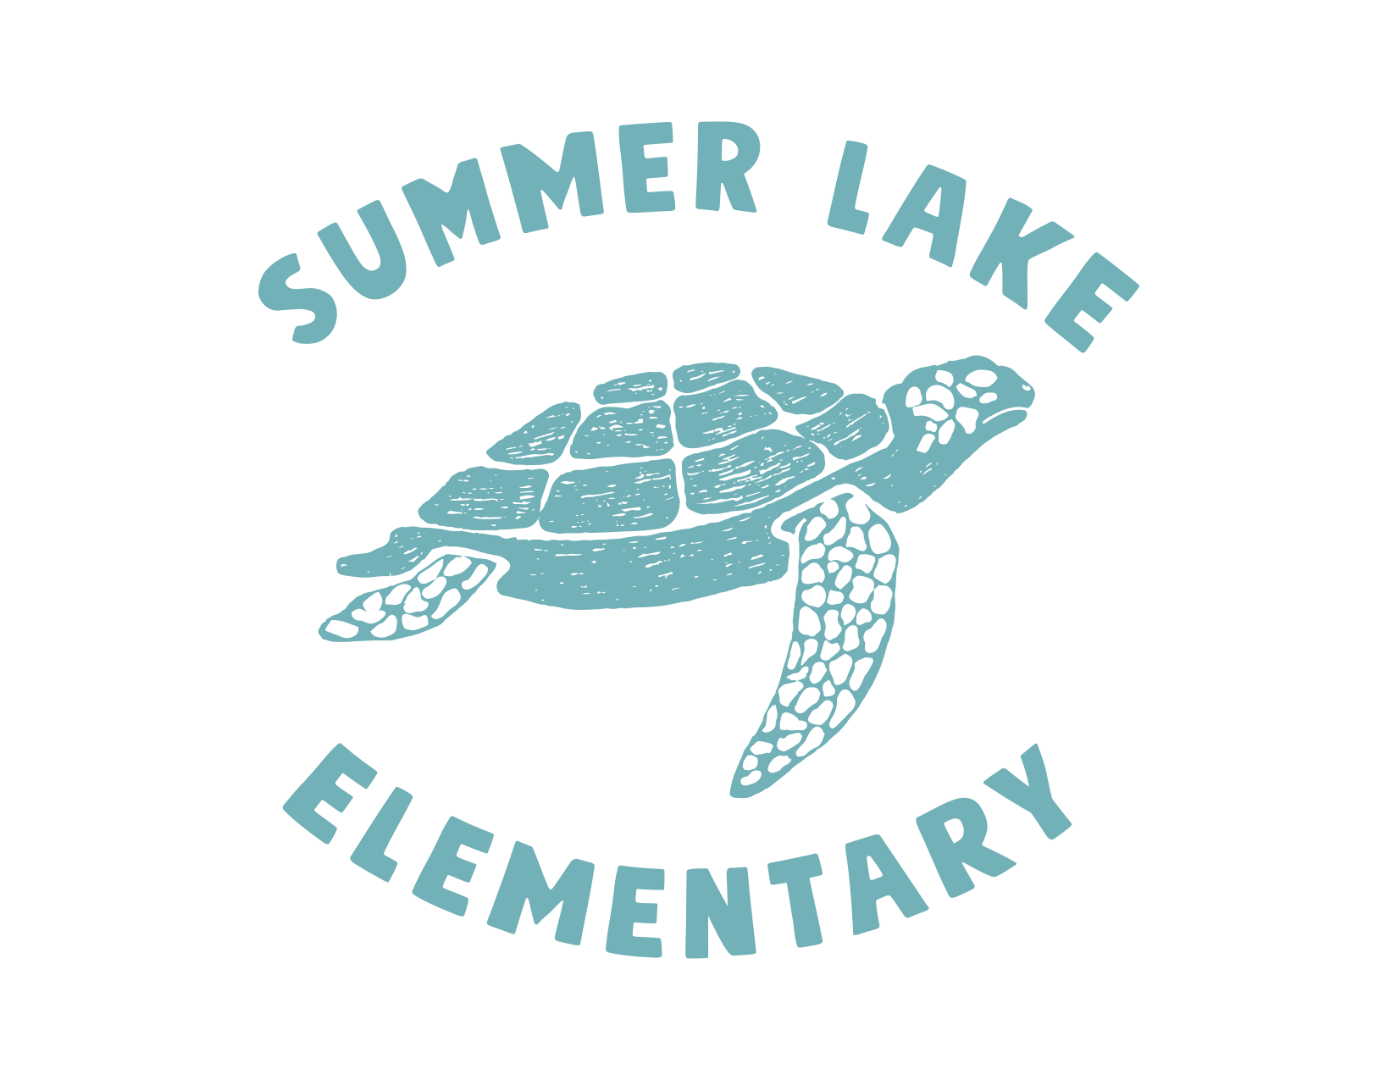 Home of Summer Lake Elementary Sign